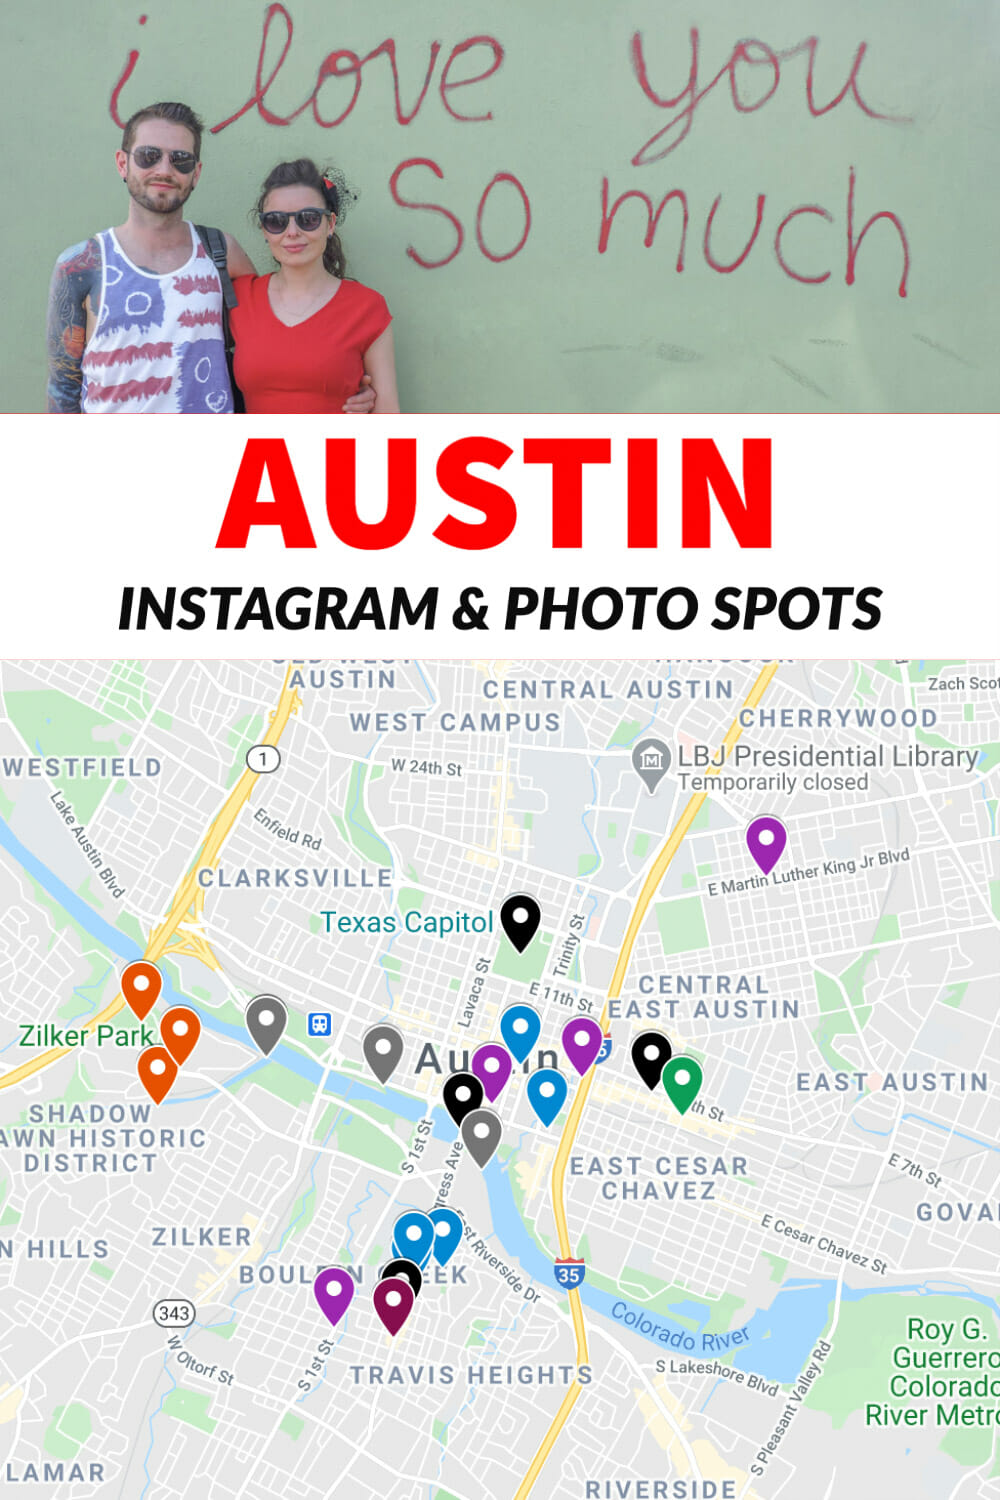 Looking for the best Instagram spots in Austin, Texas? This guide details cool streets, hip hotels, awesome murals, landmarks and the cutest couple photo locations in Austin. Map included!